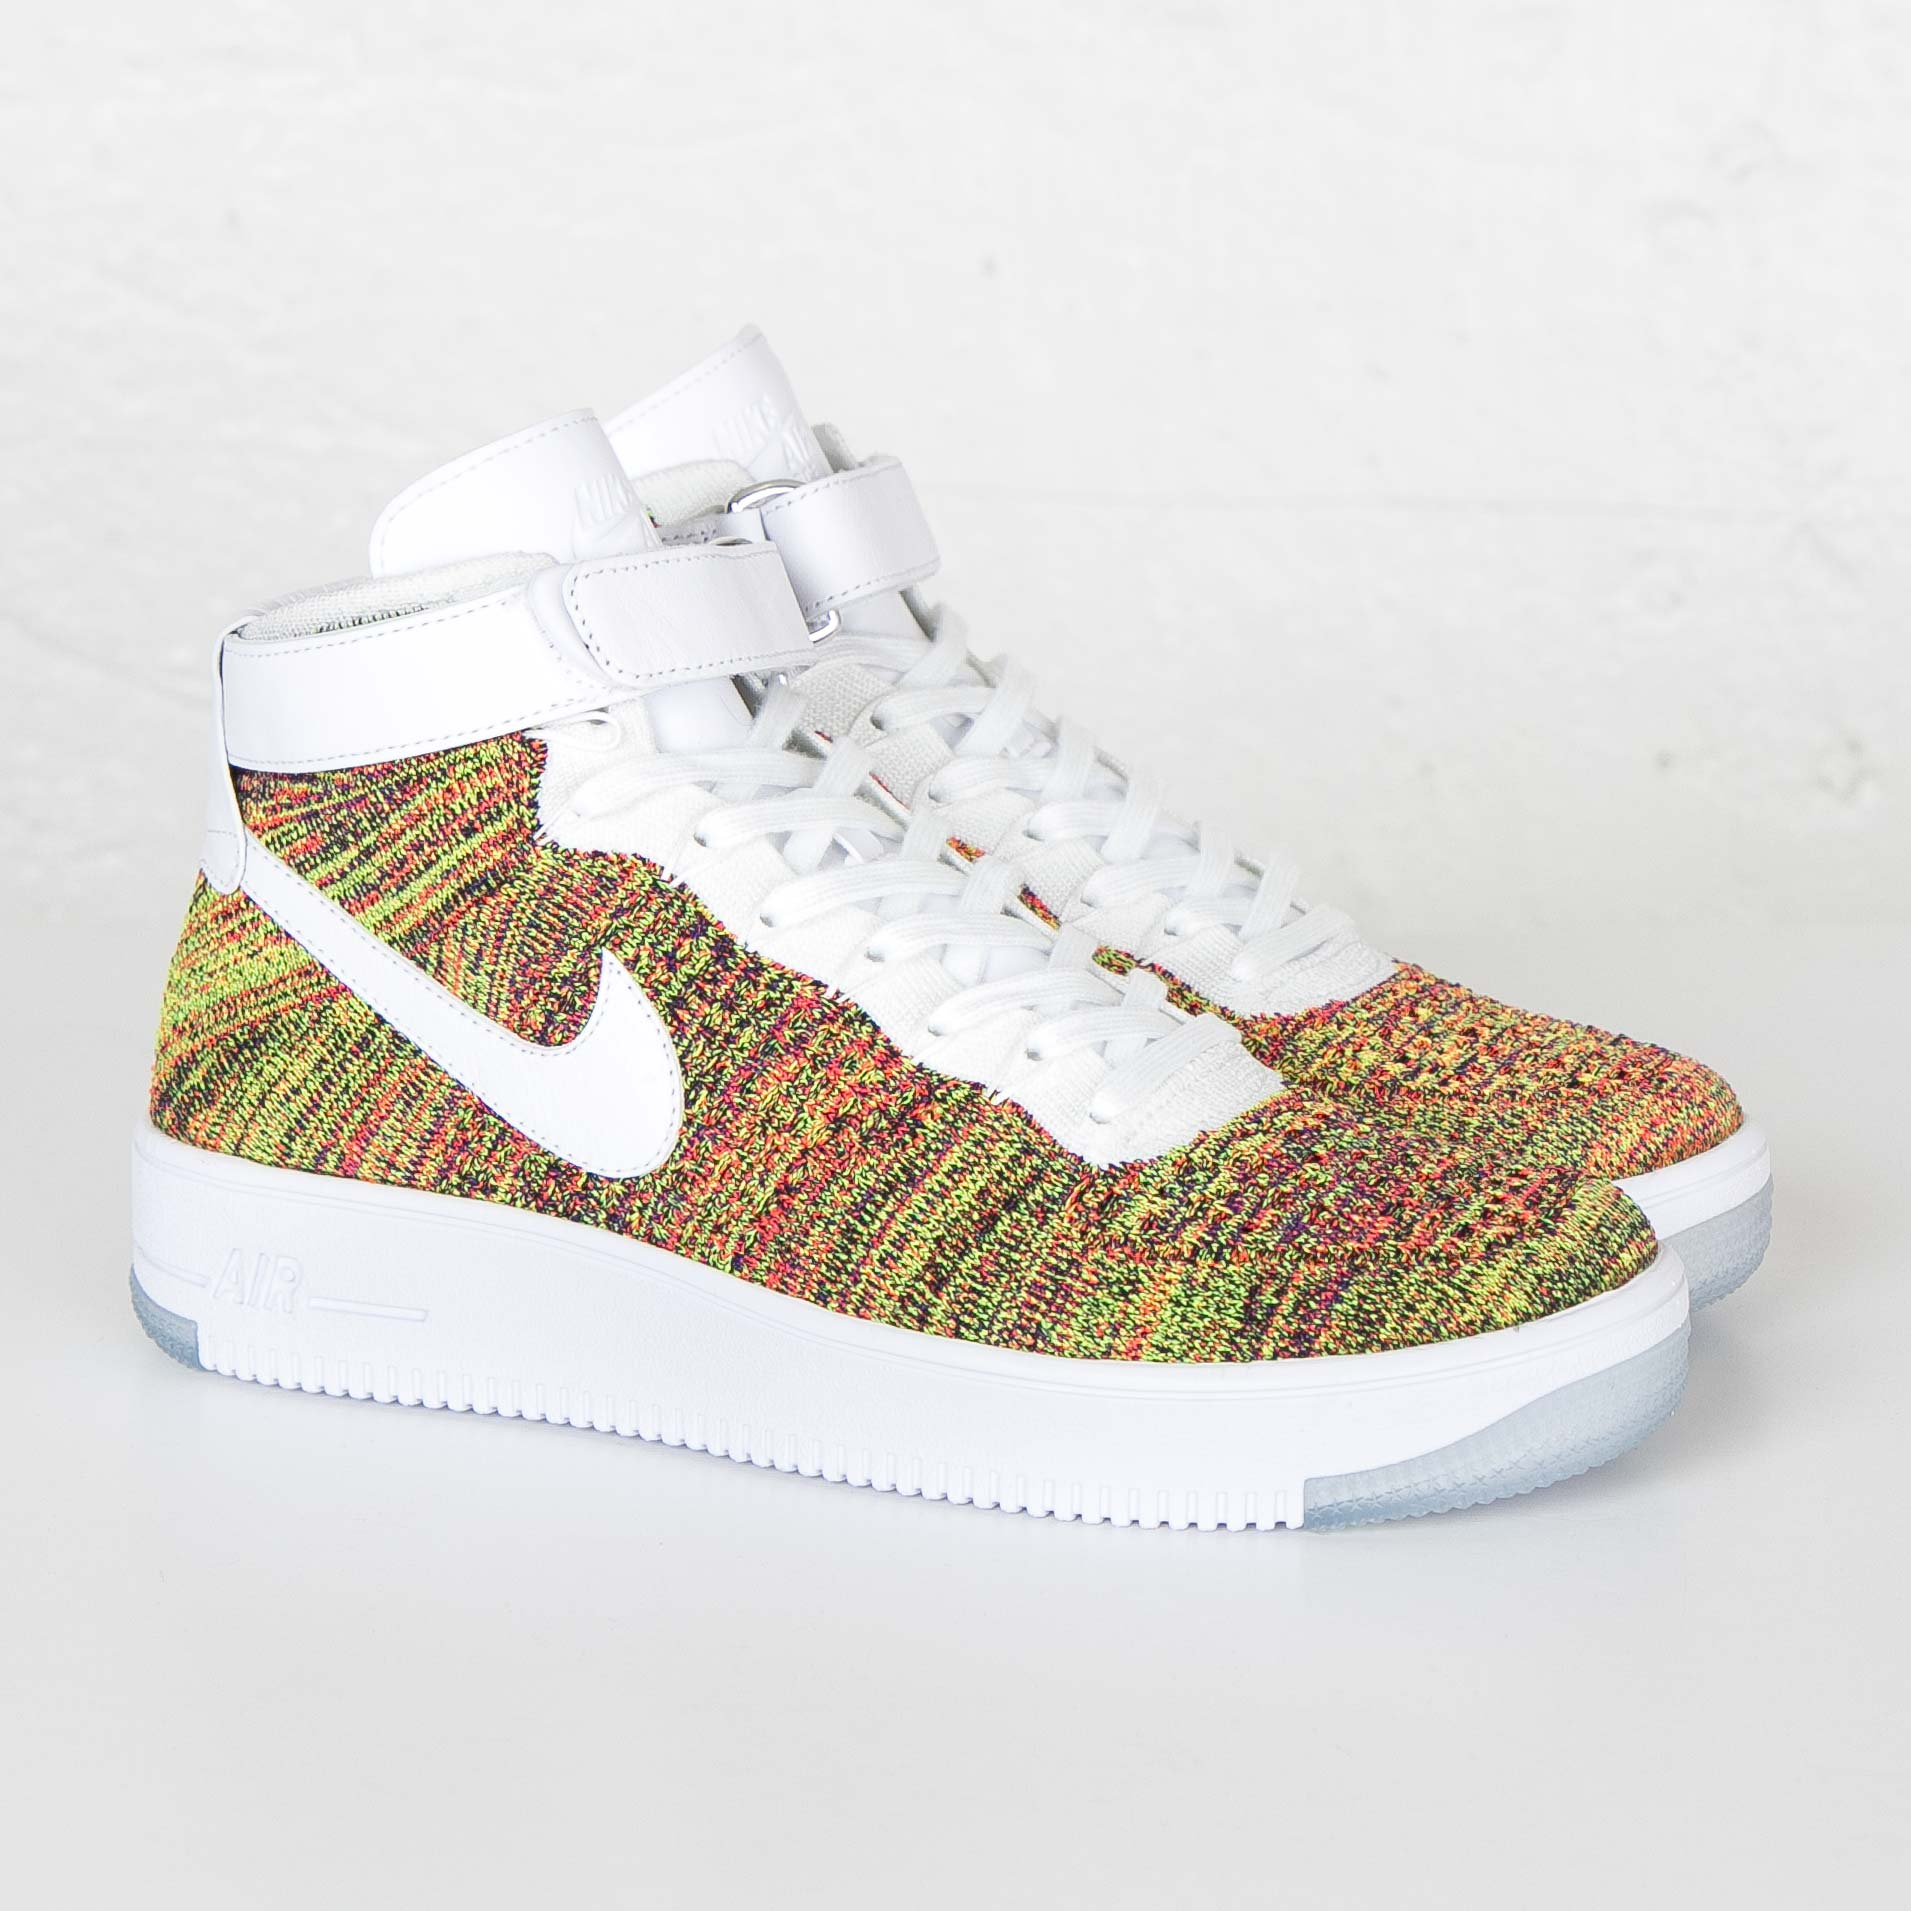 the latest d67c5 a6a25 Nike AF1 Ultra Flyknit Mid - 817420-700 - Sneakersnstuff ...